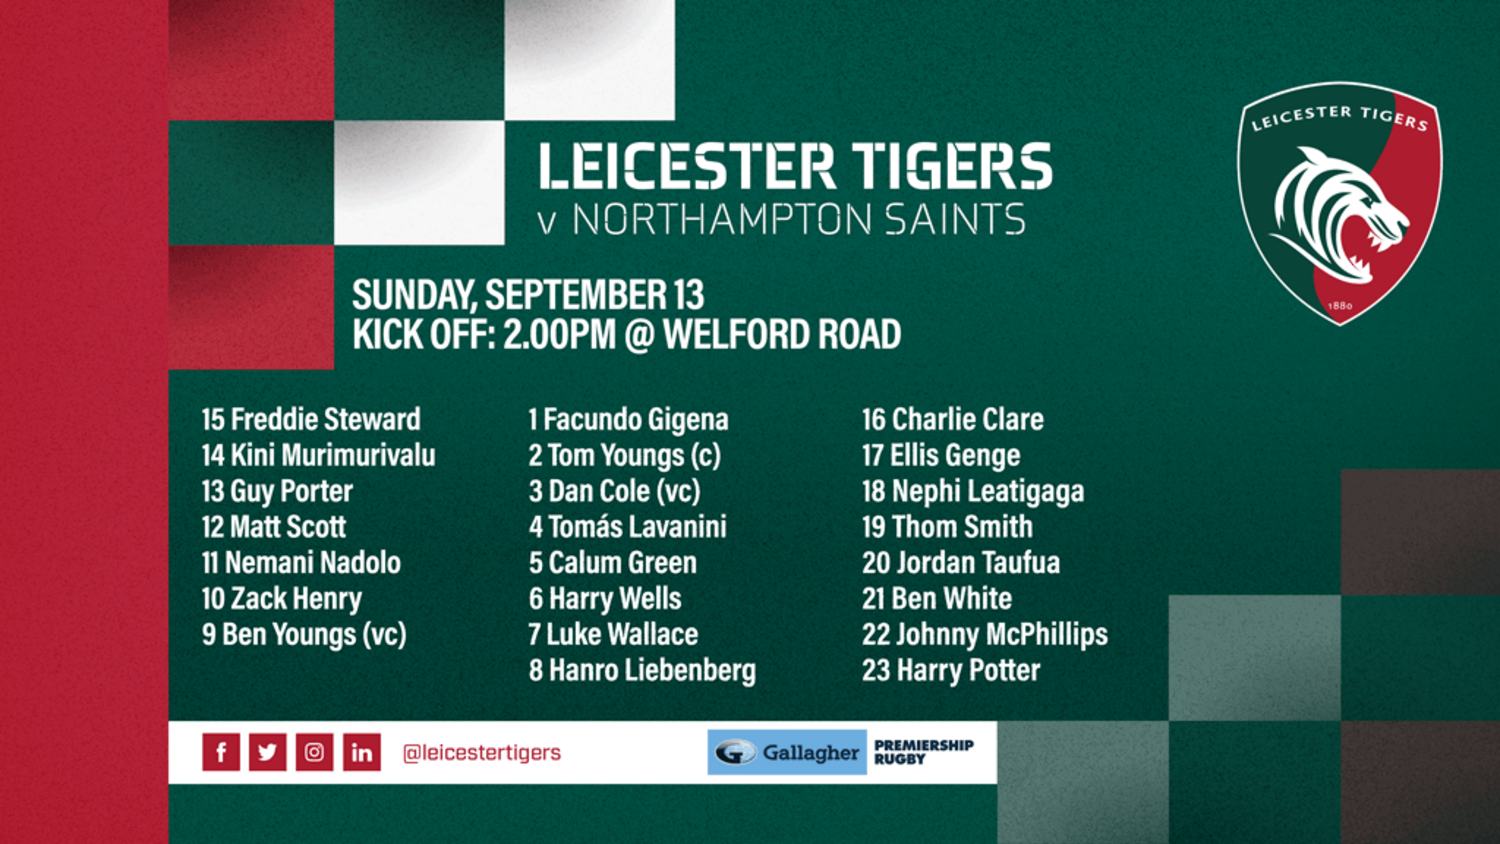 tigers v saints gp20 130920 team news.png